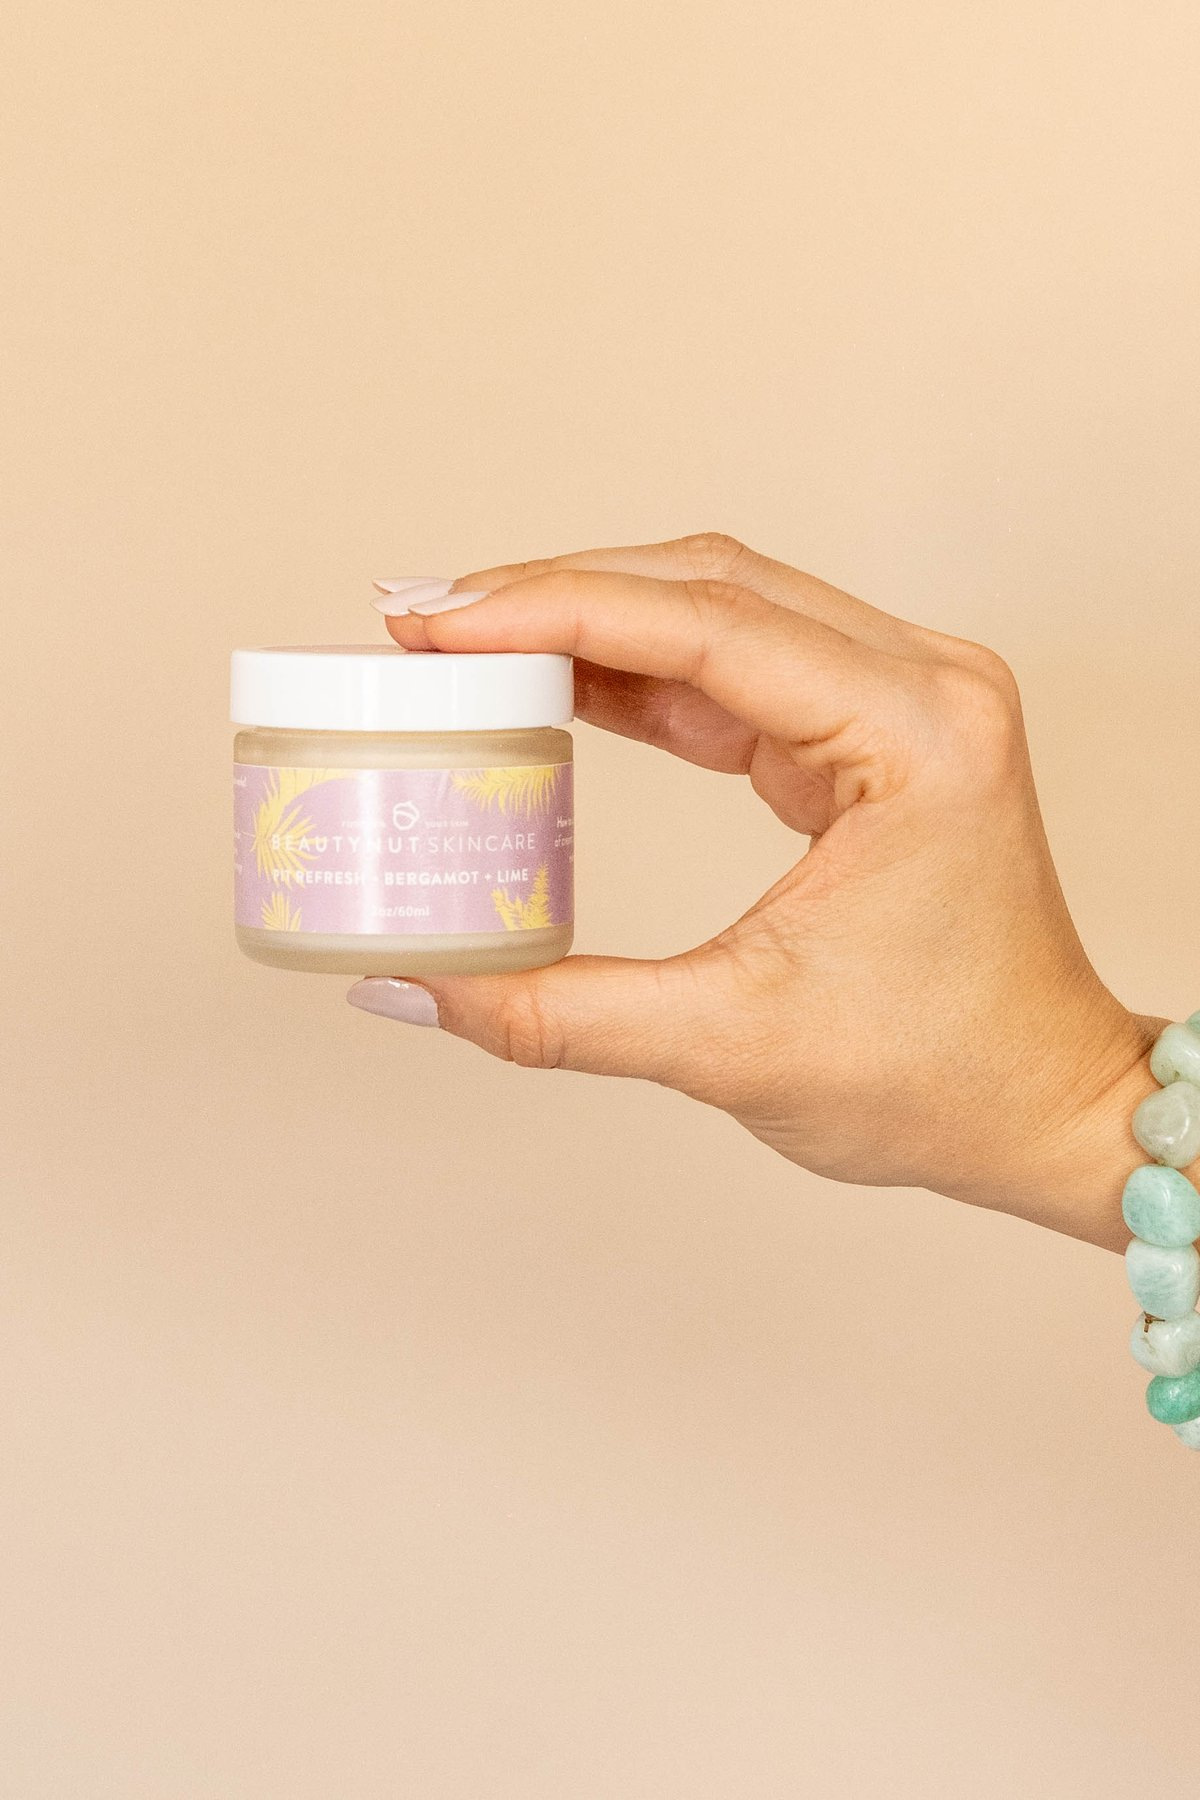 a hand holding up a pot of BeautyNut natural deodorant against a peach background